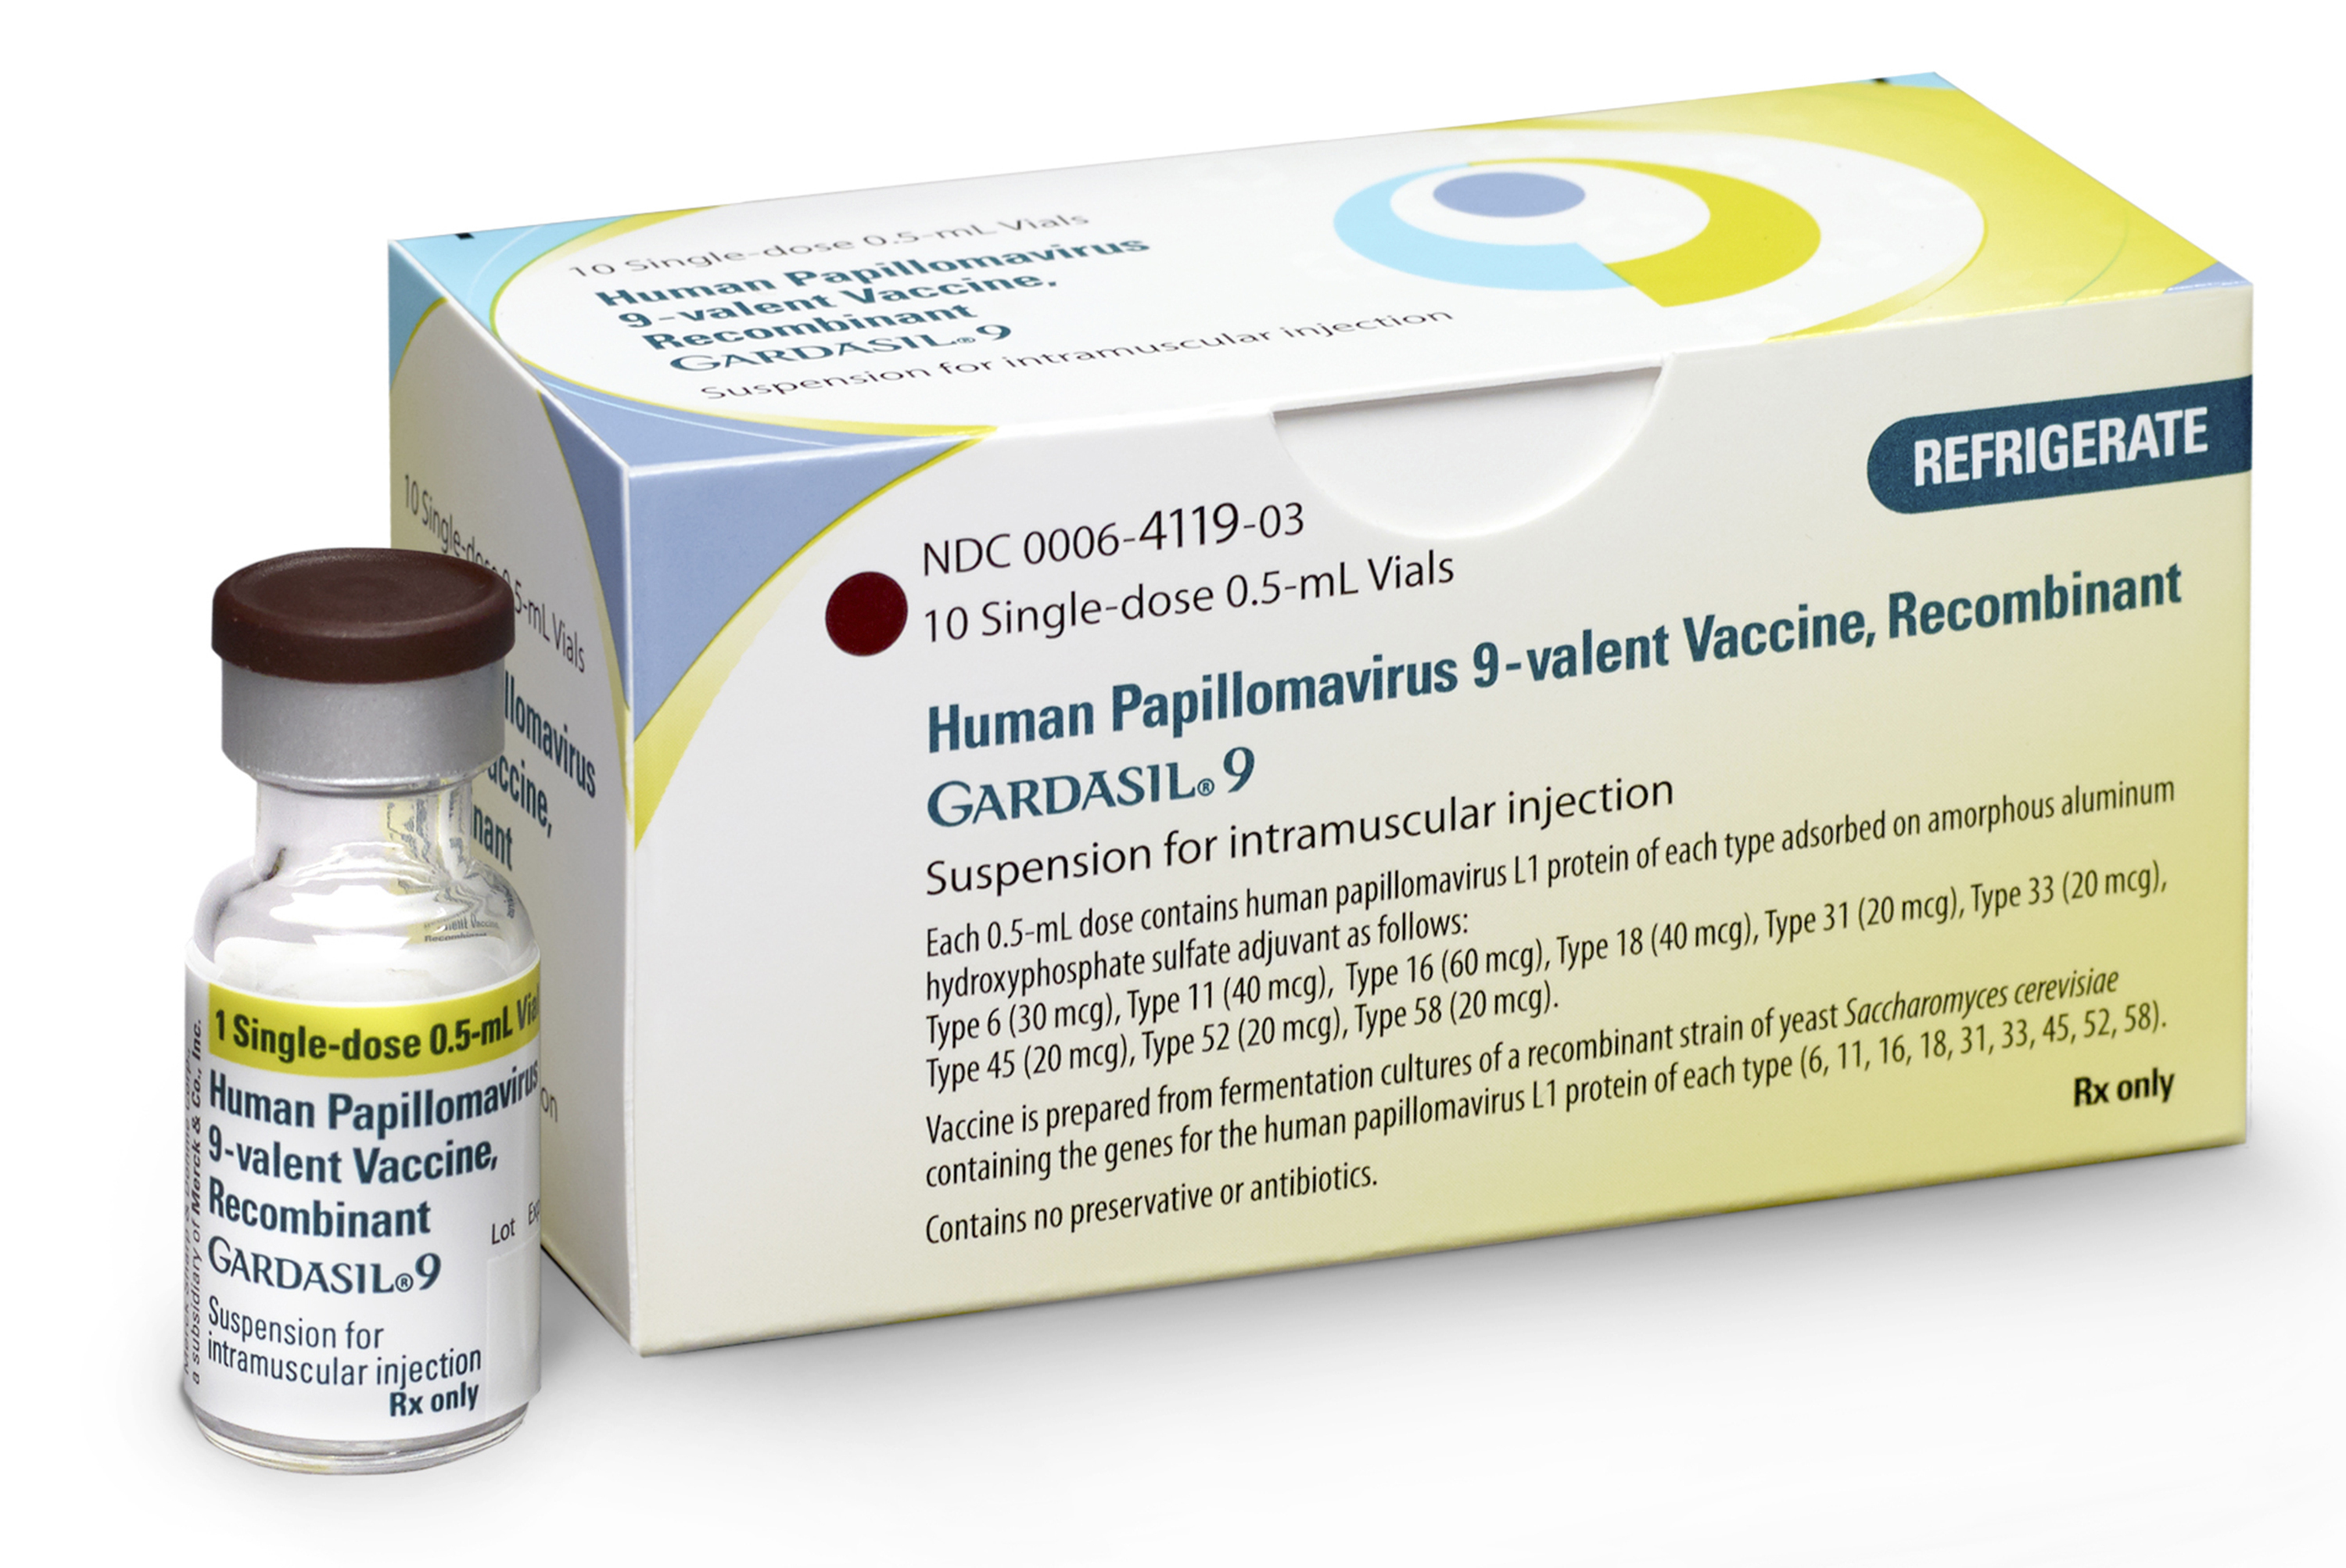 Hpv vaccine missed dose. POLITICO - Global Policy Lab